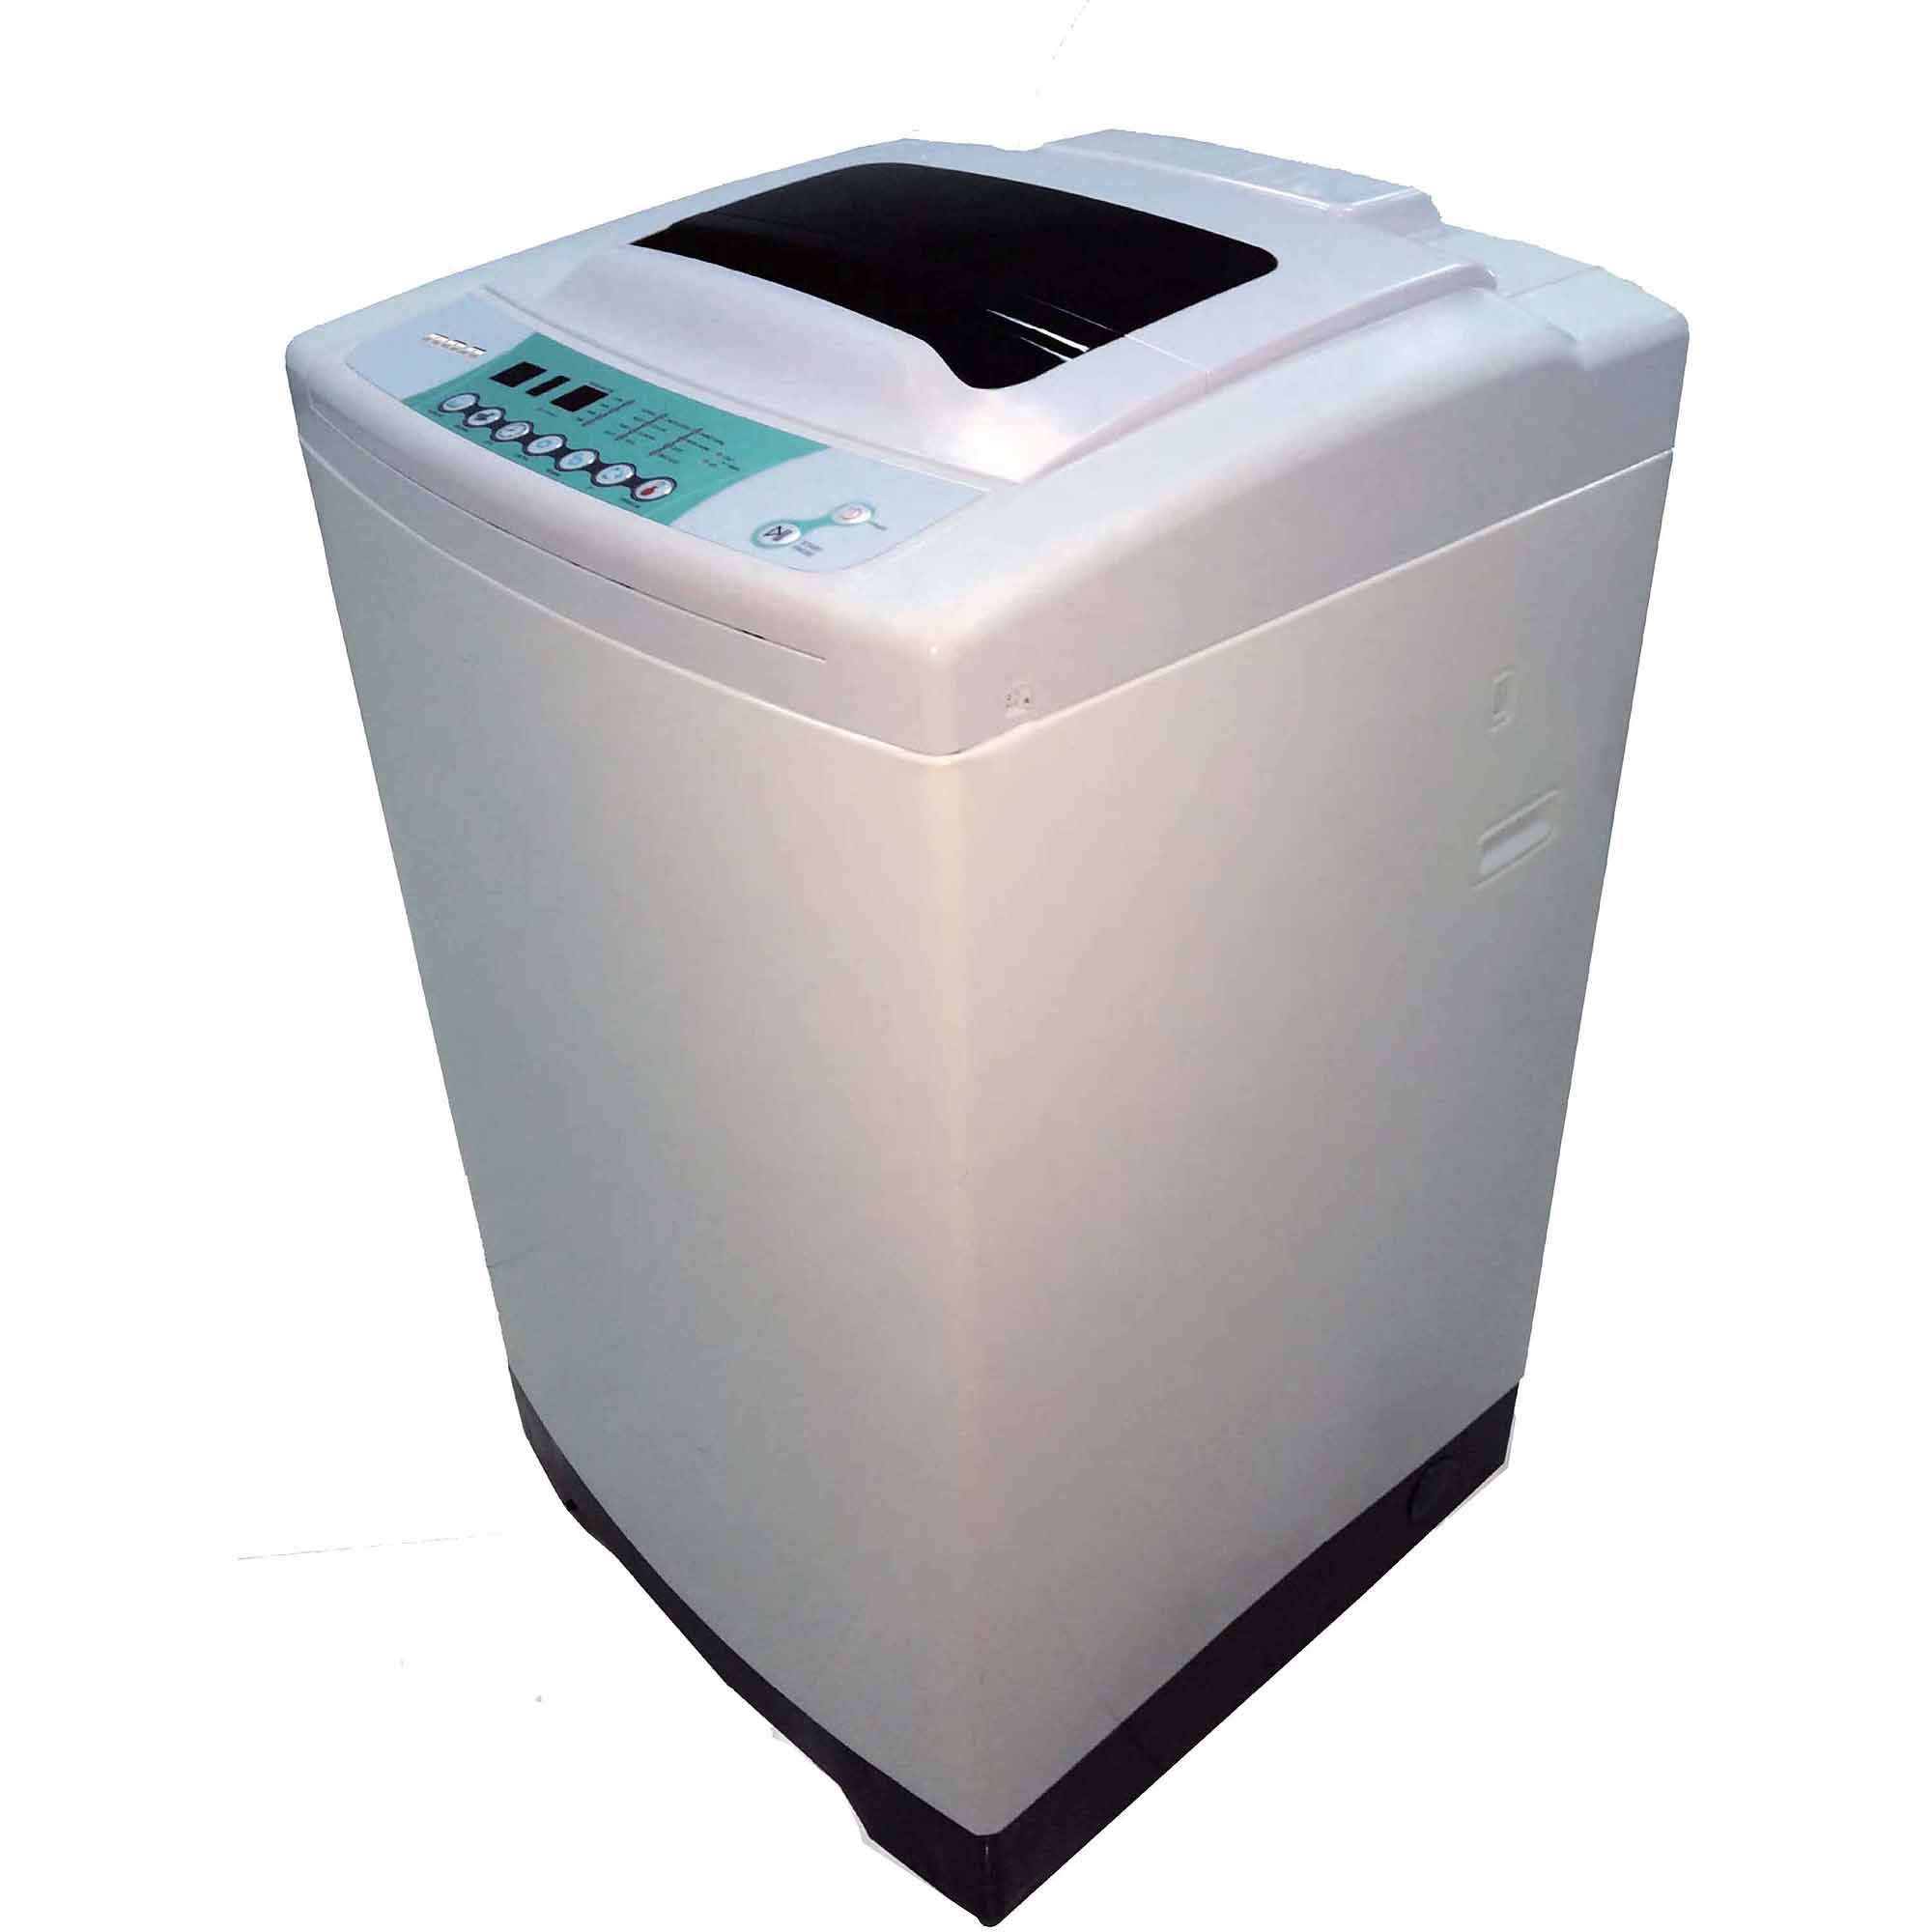 Haier 1.0 Cubic Foot Portable Washing Machine, HLP21N ...